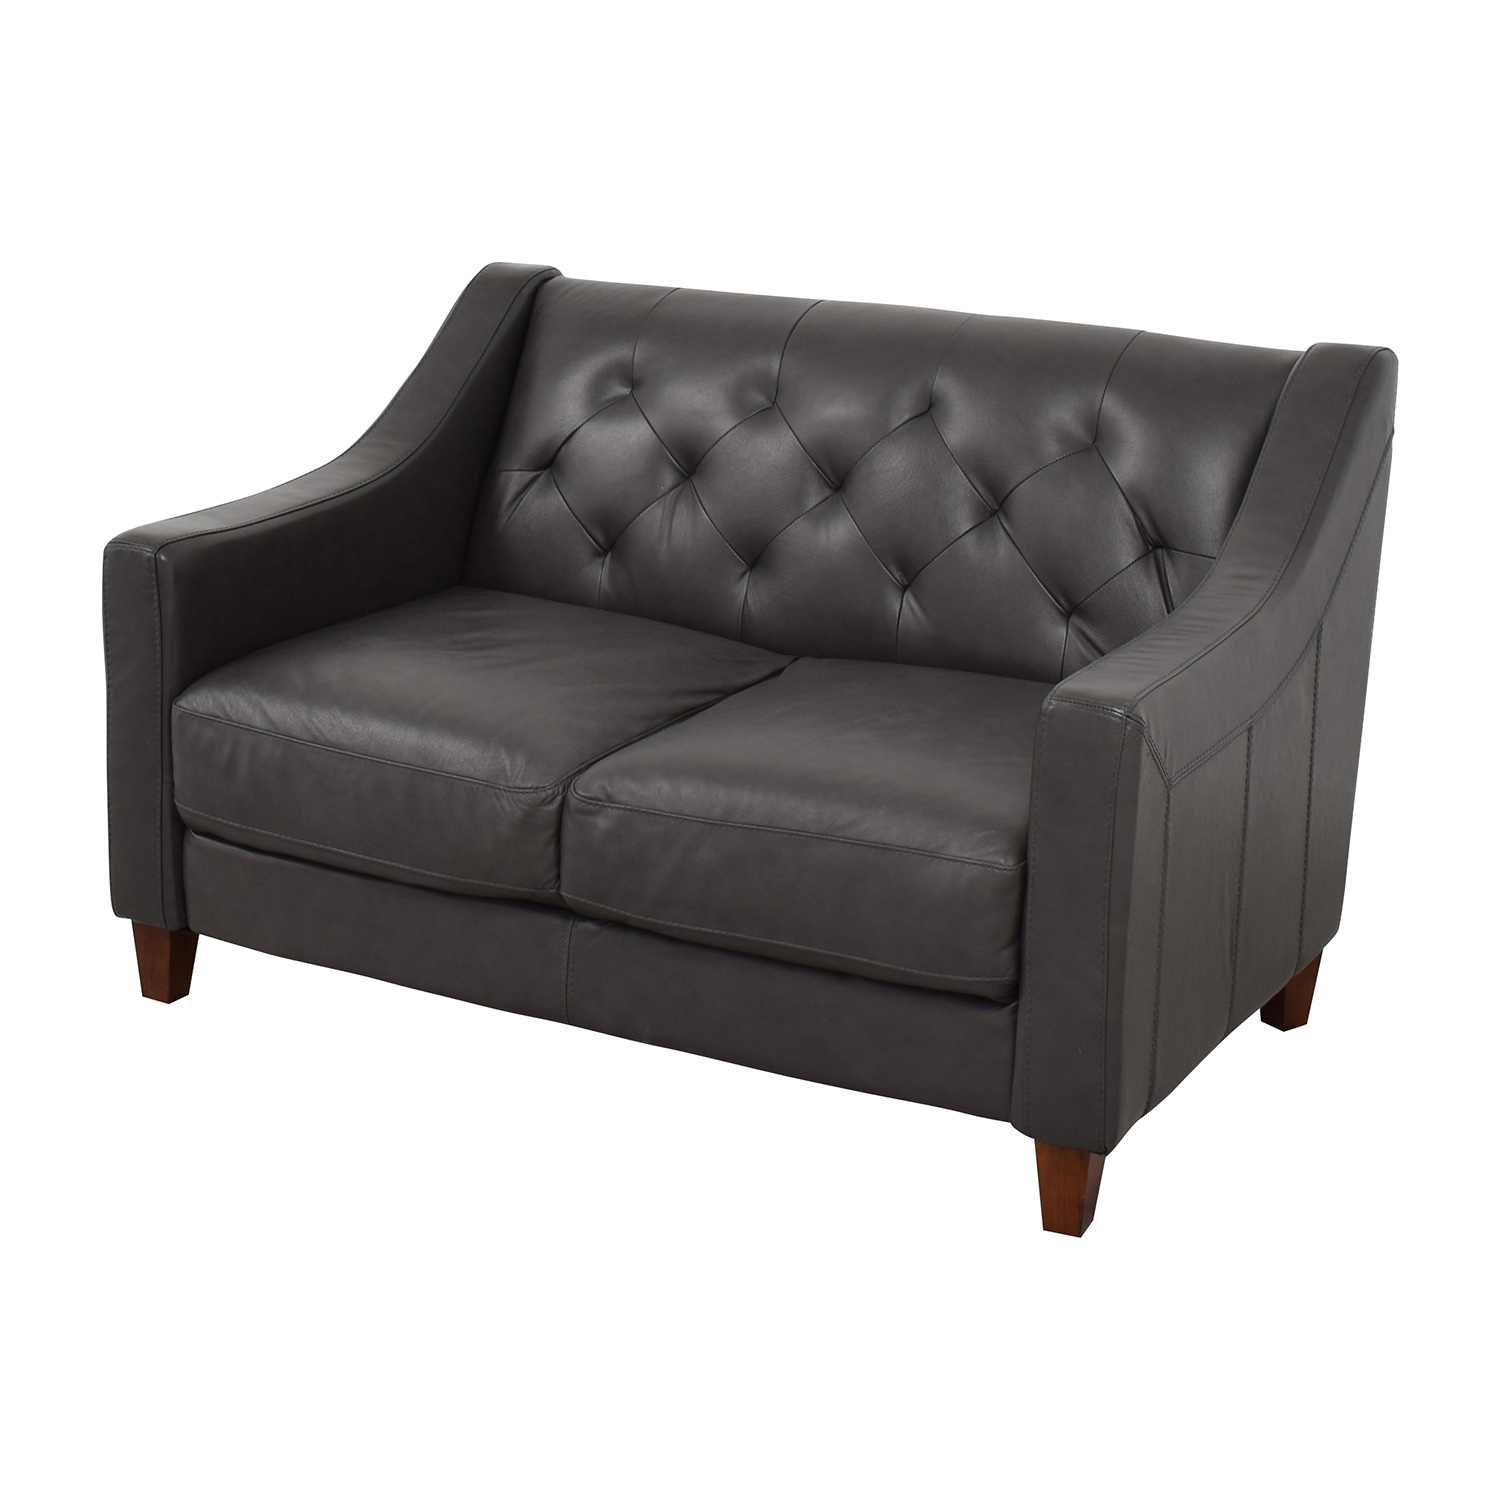 Macys Macys Tufted Leather Loveseat Sofas